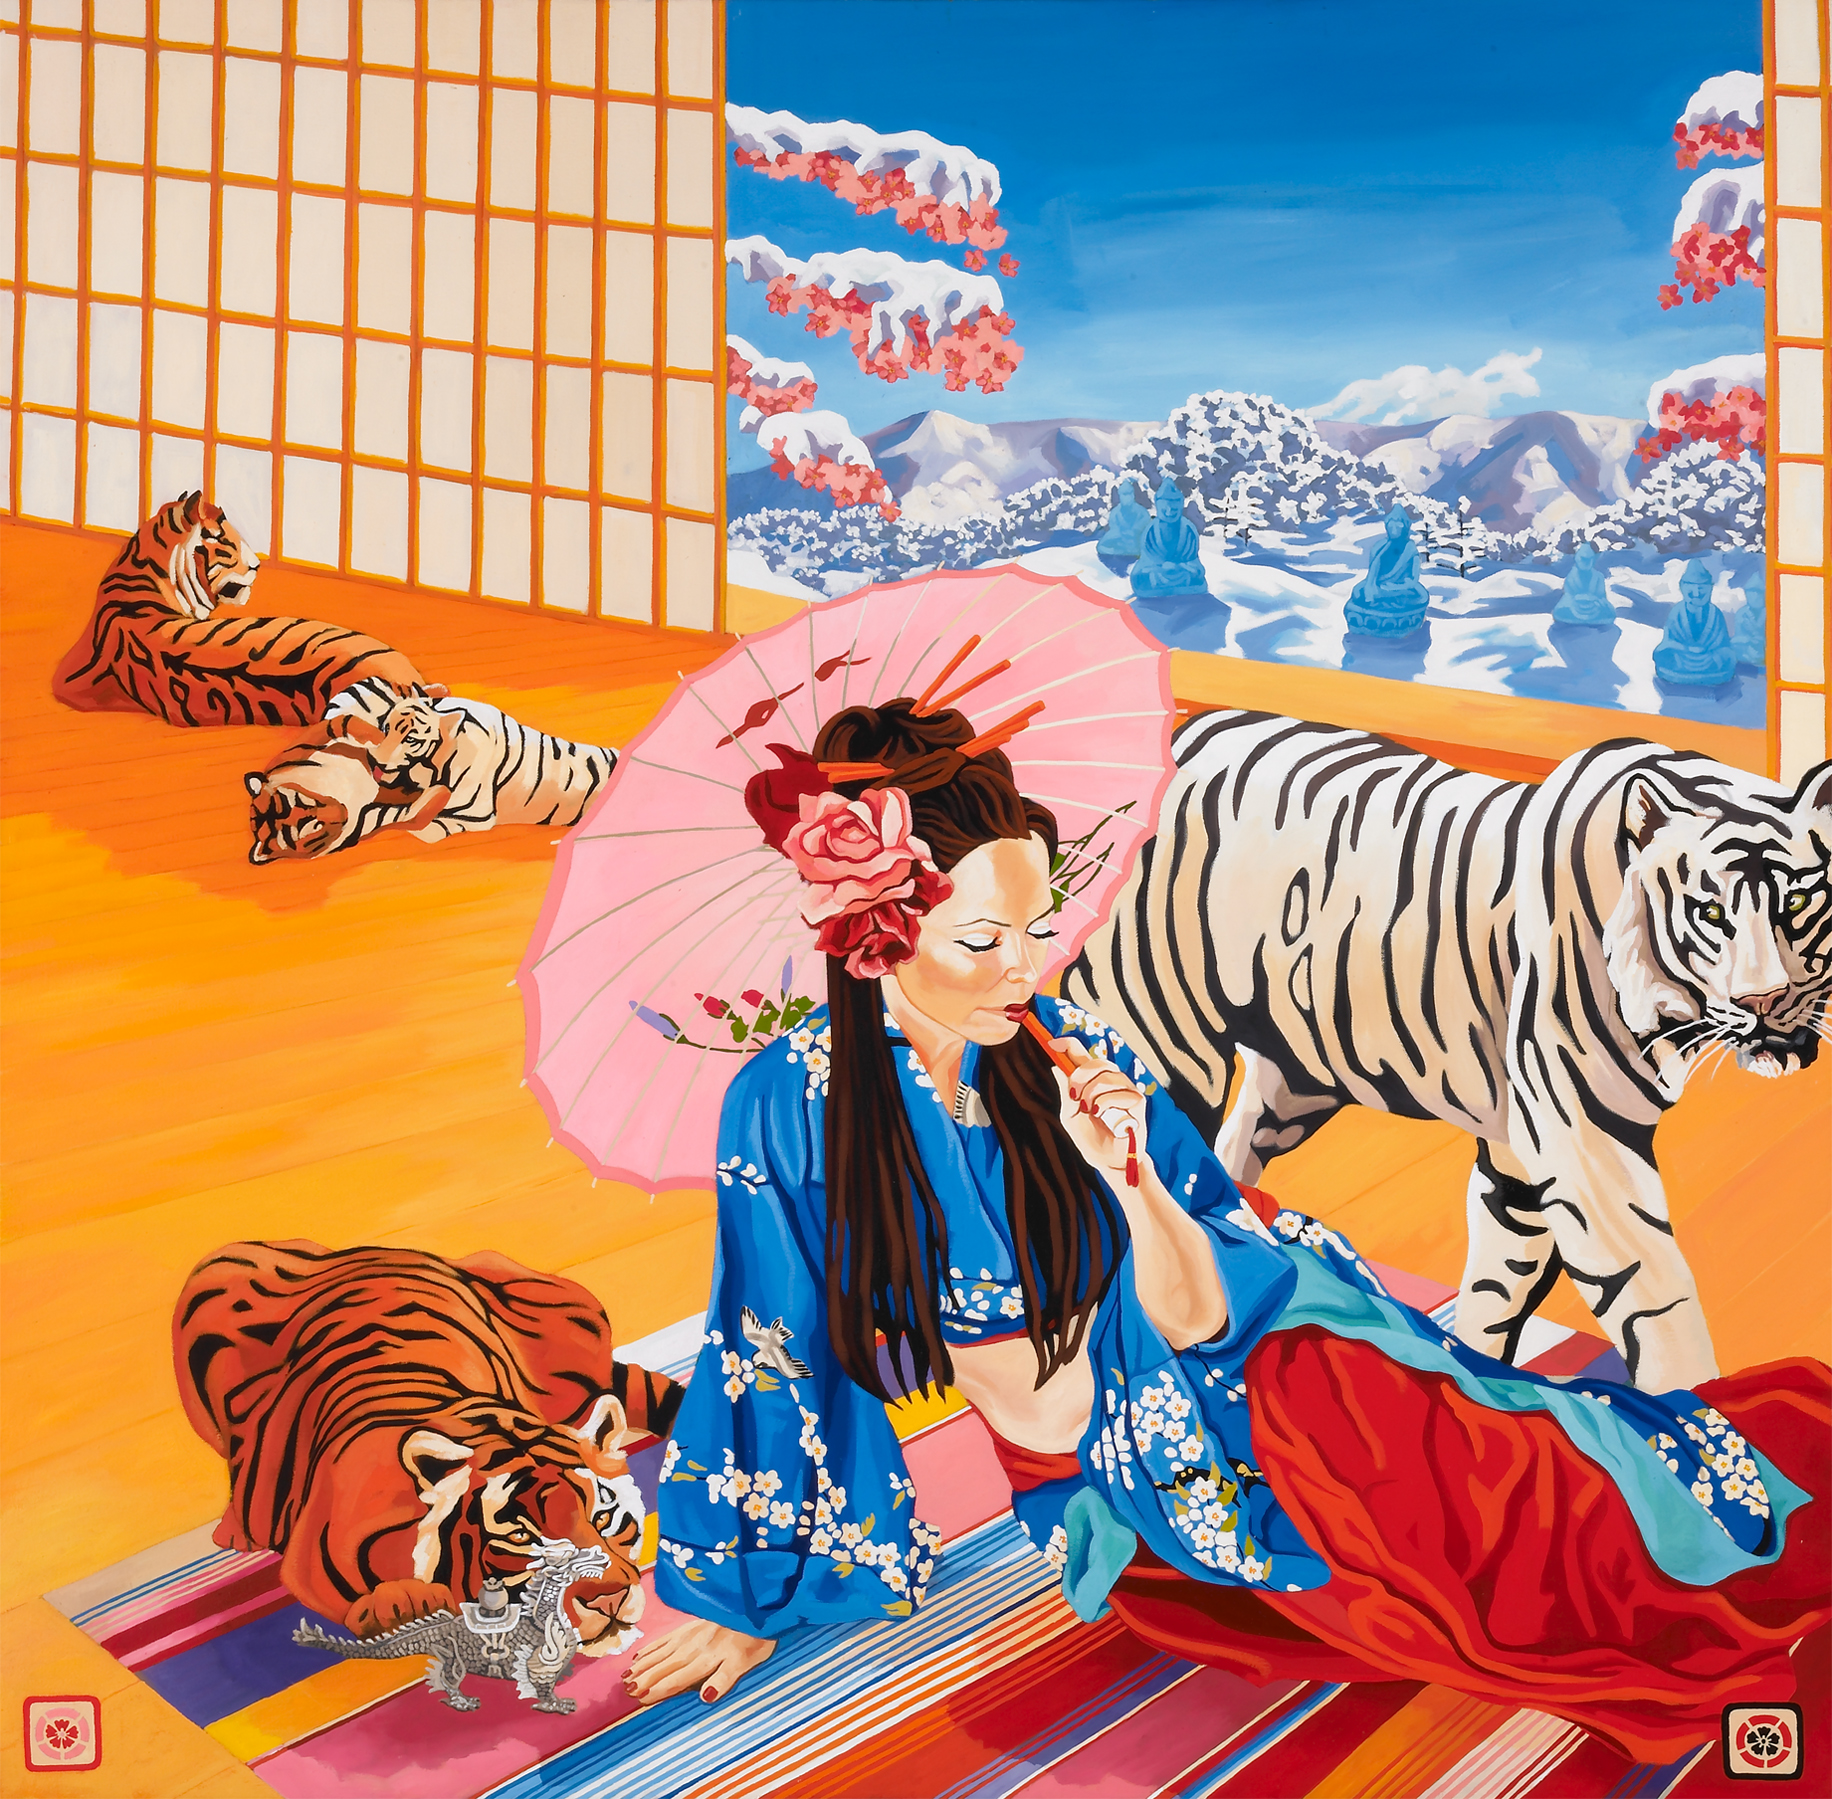 Tigers Milk, 50 x 50 in, oil on canvas, 2006